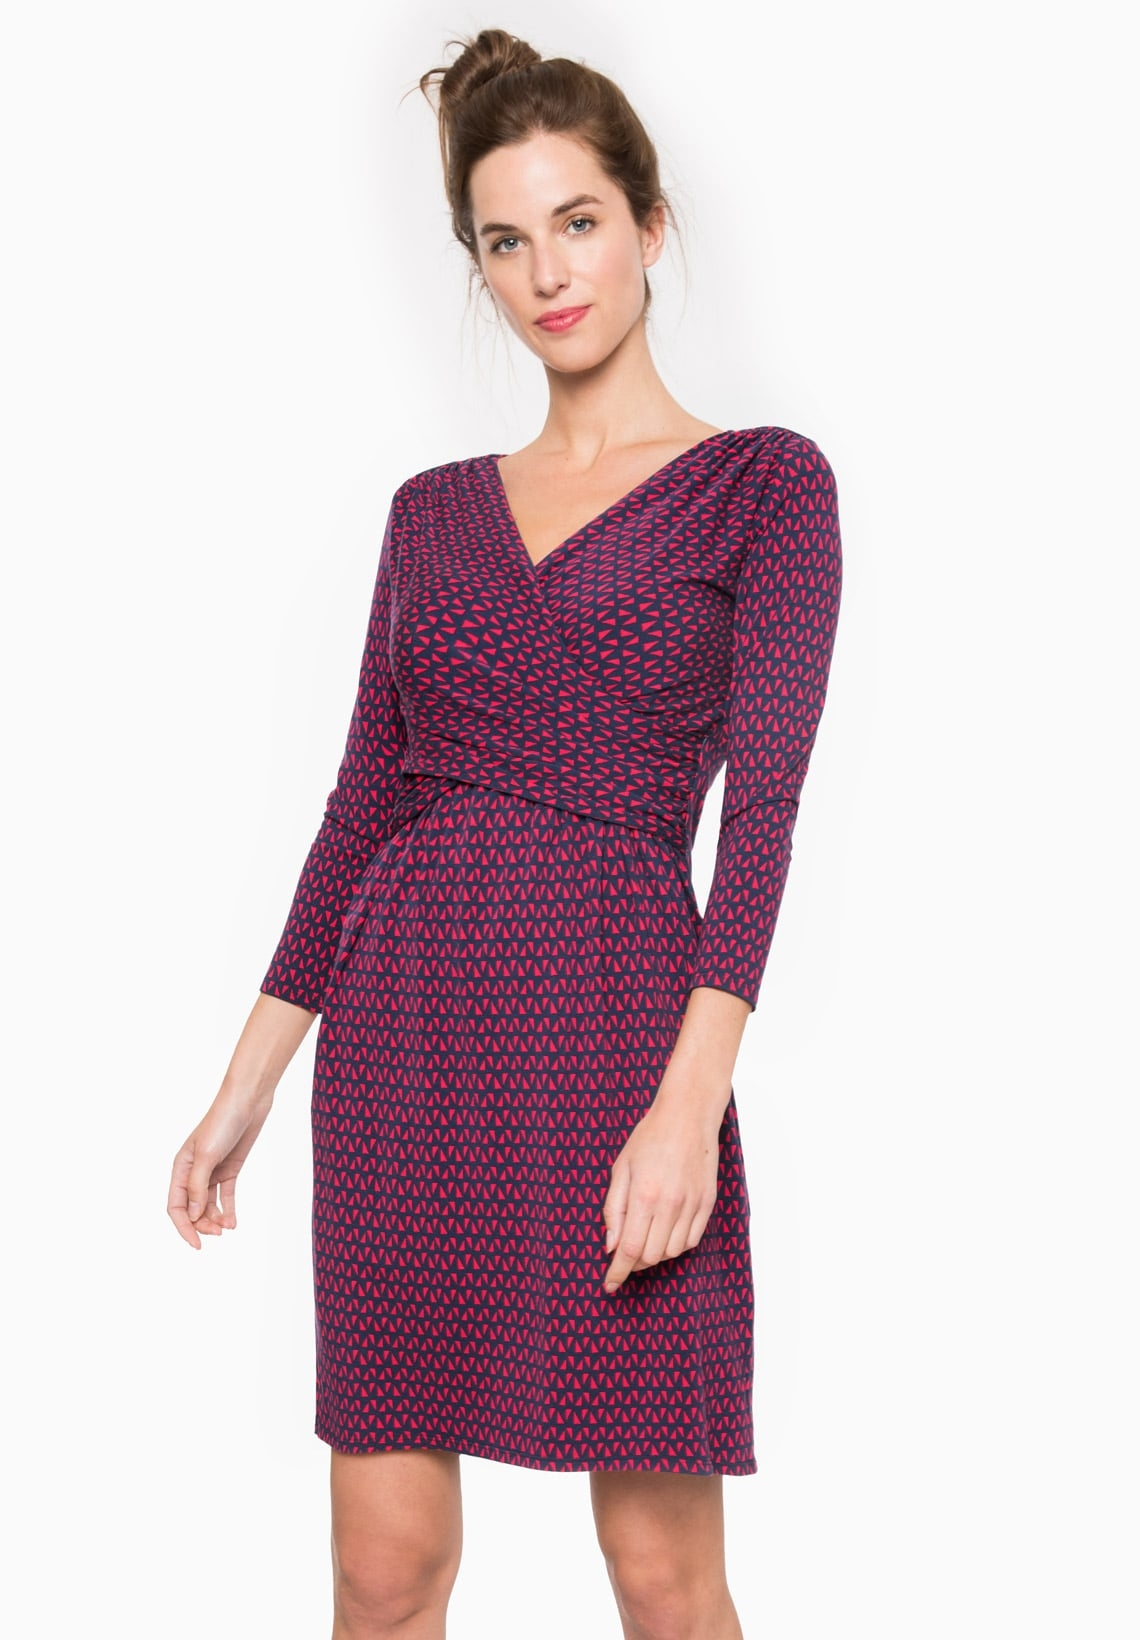 5bc6c48542c7 ... DIVINE ls - Maternity dress - Envie de Fraise ...